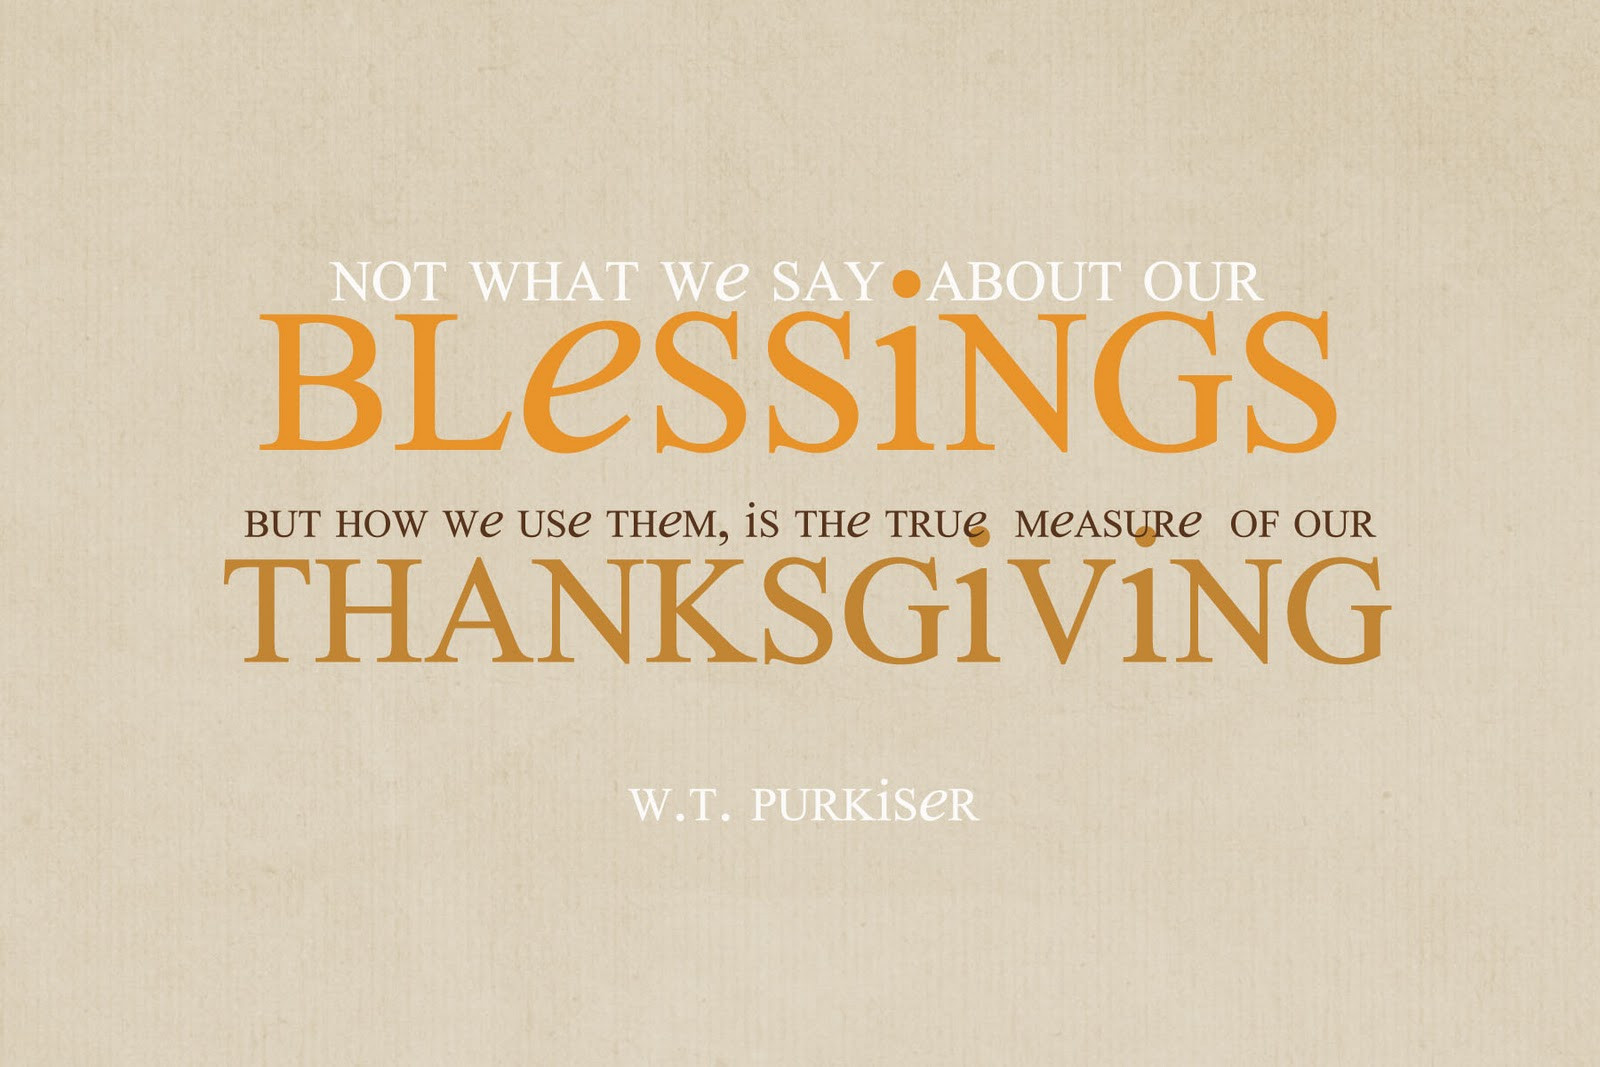 Thanksgiving Turkey Quotes  3000 miles north & back 11 01 2011 12 01 2011